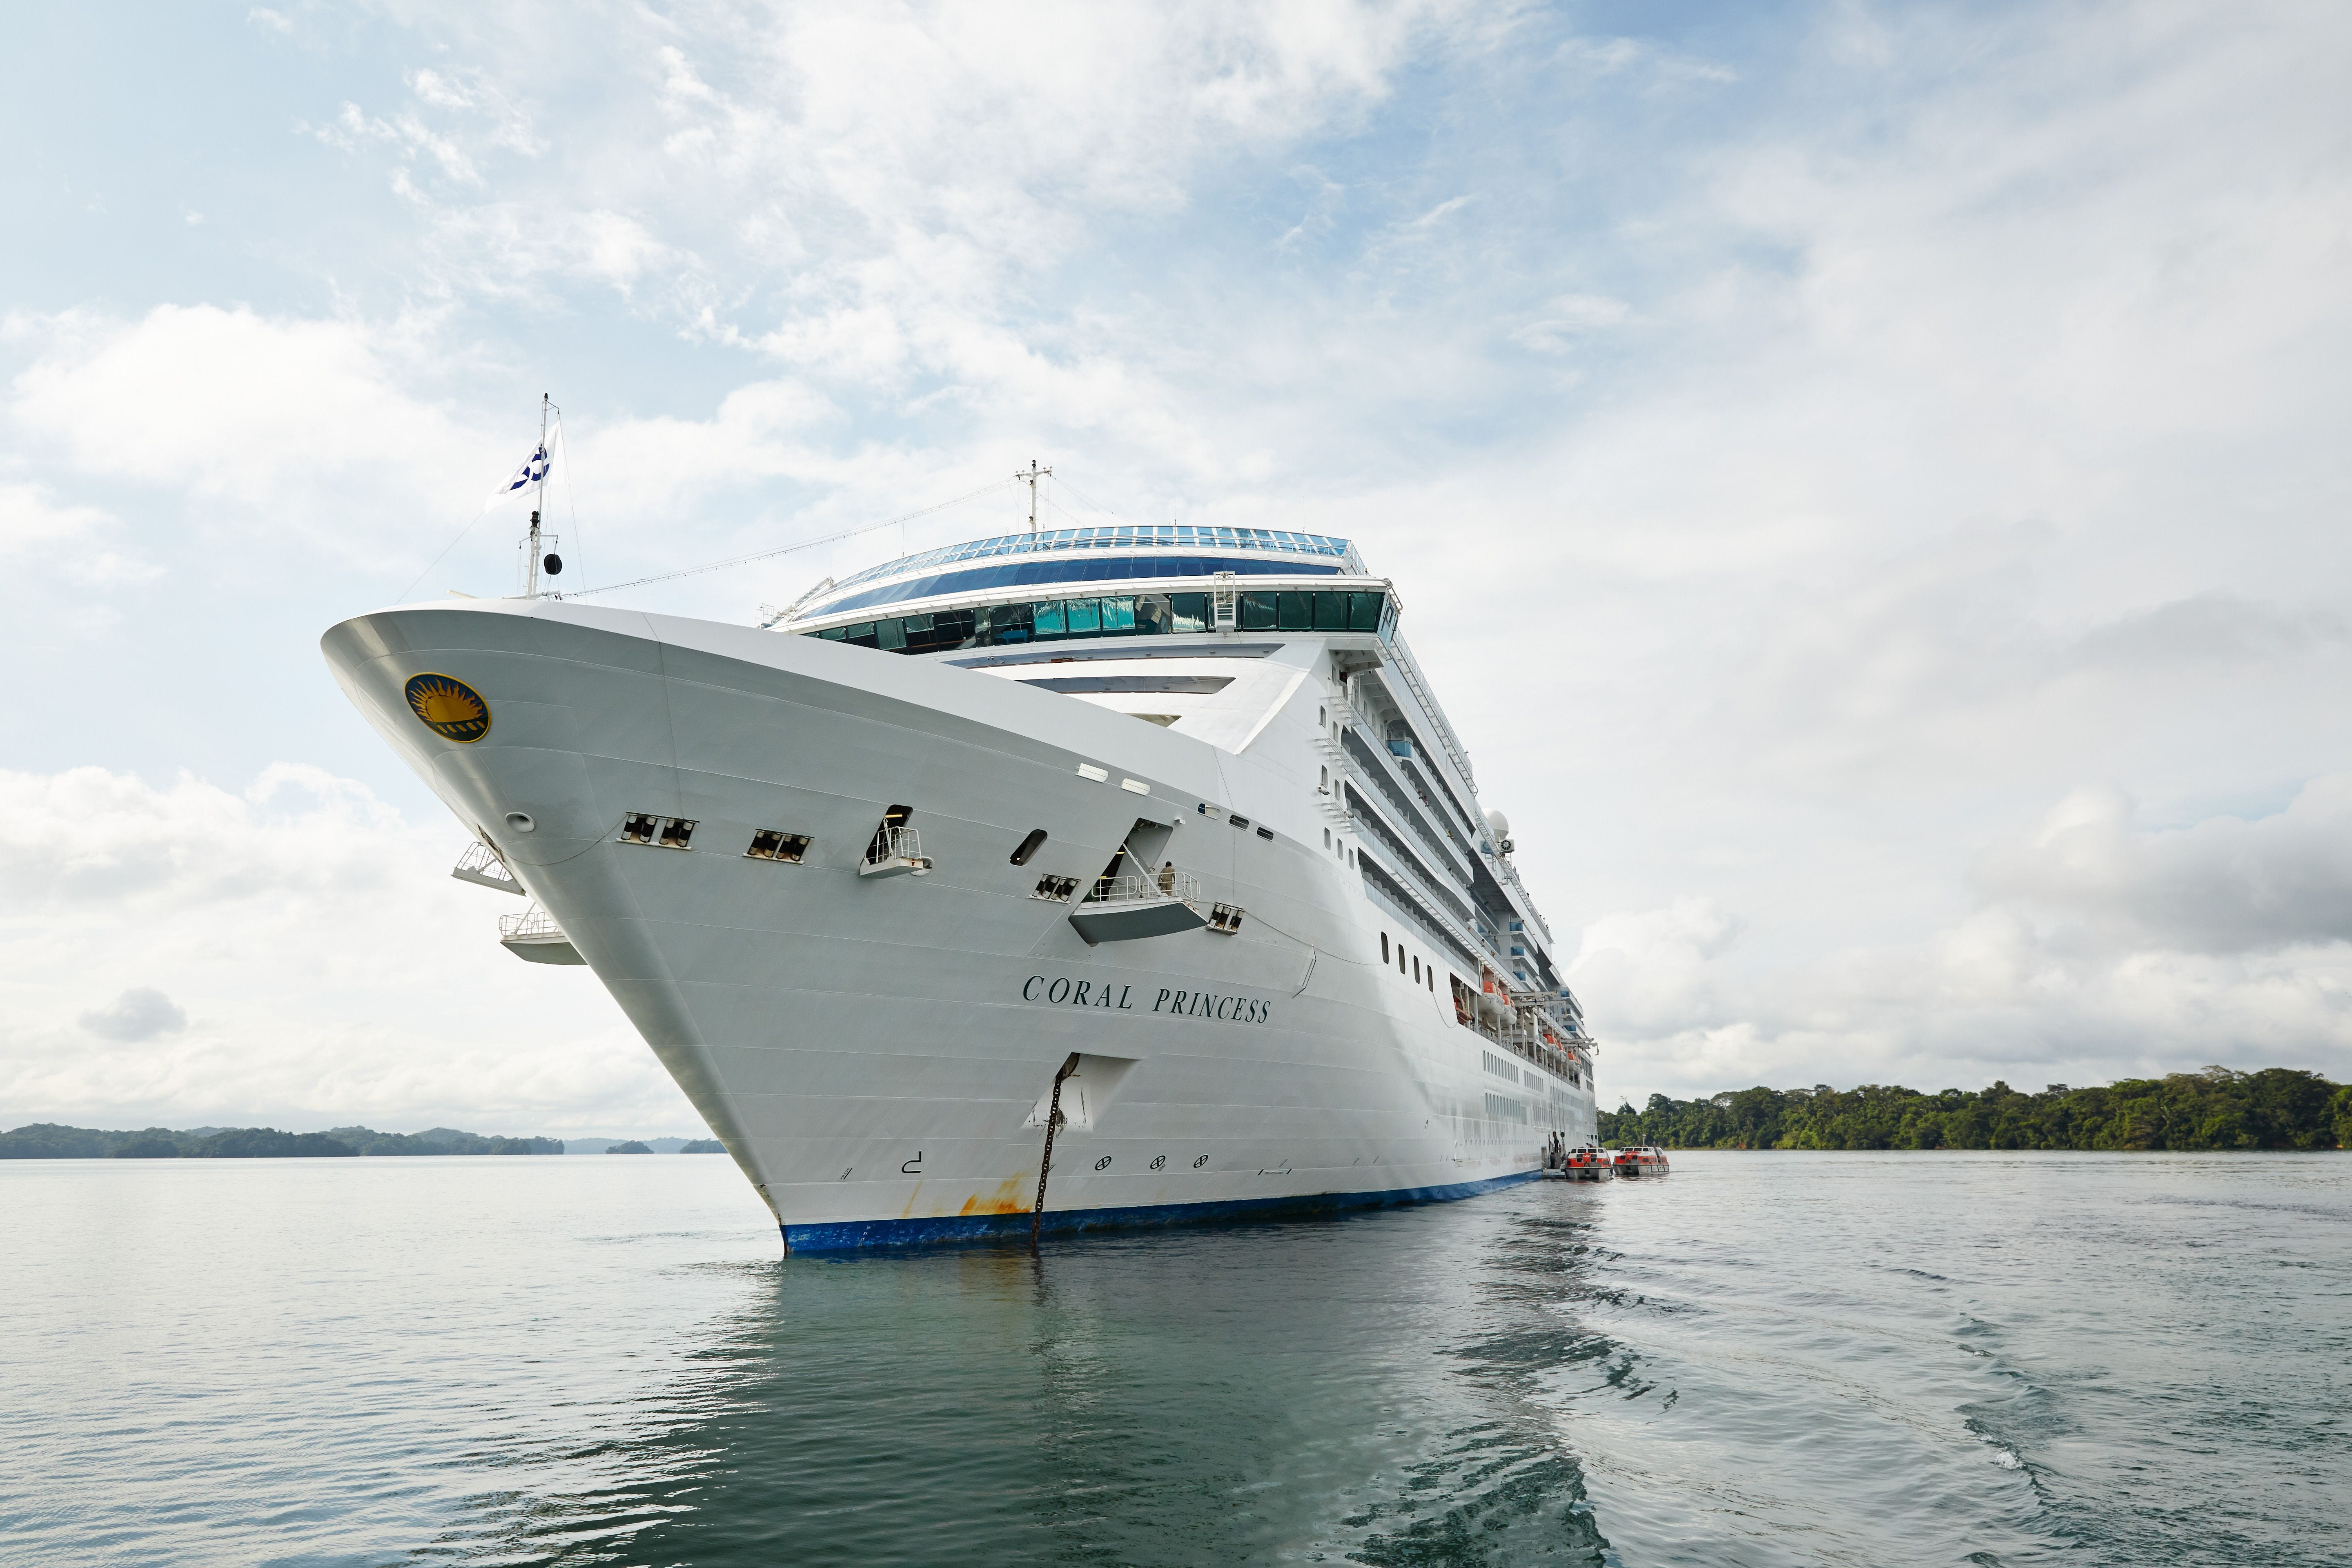 Four midsize cruise ships that prove